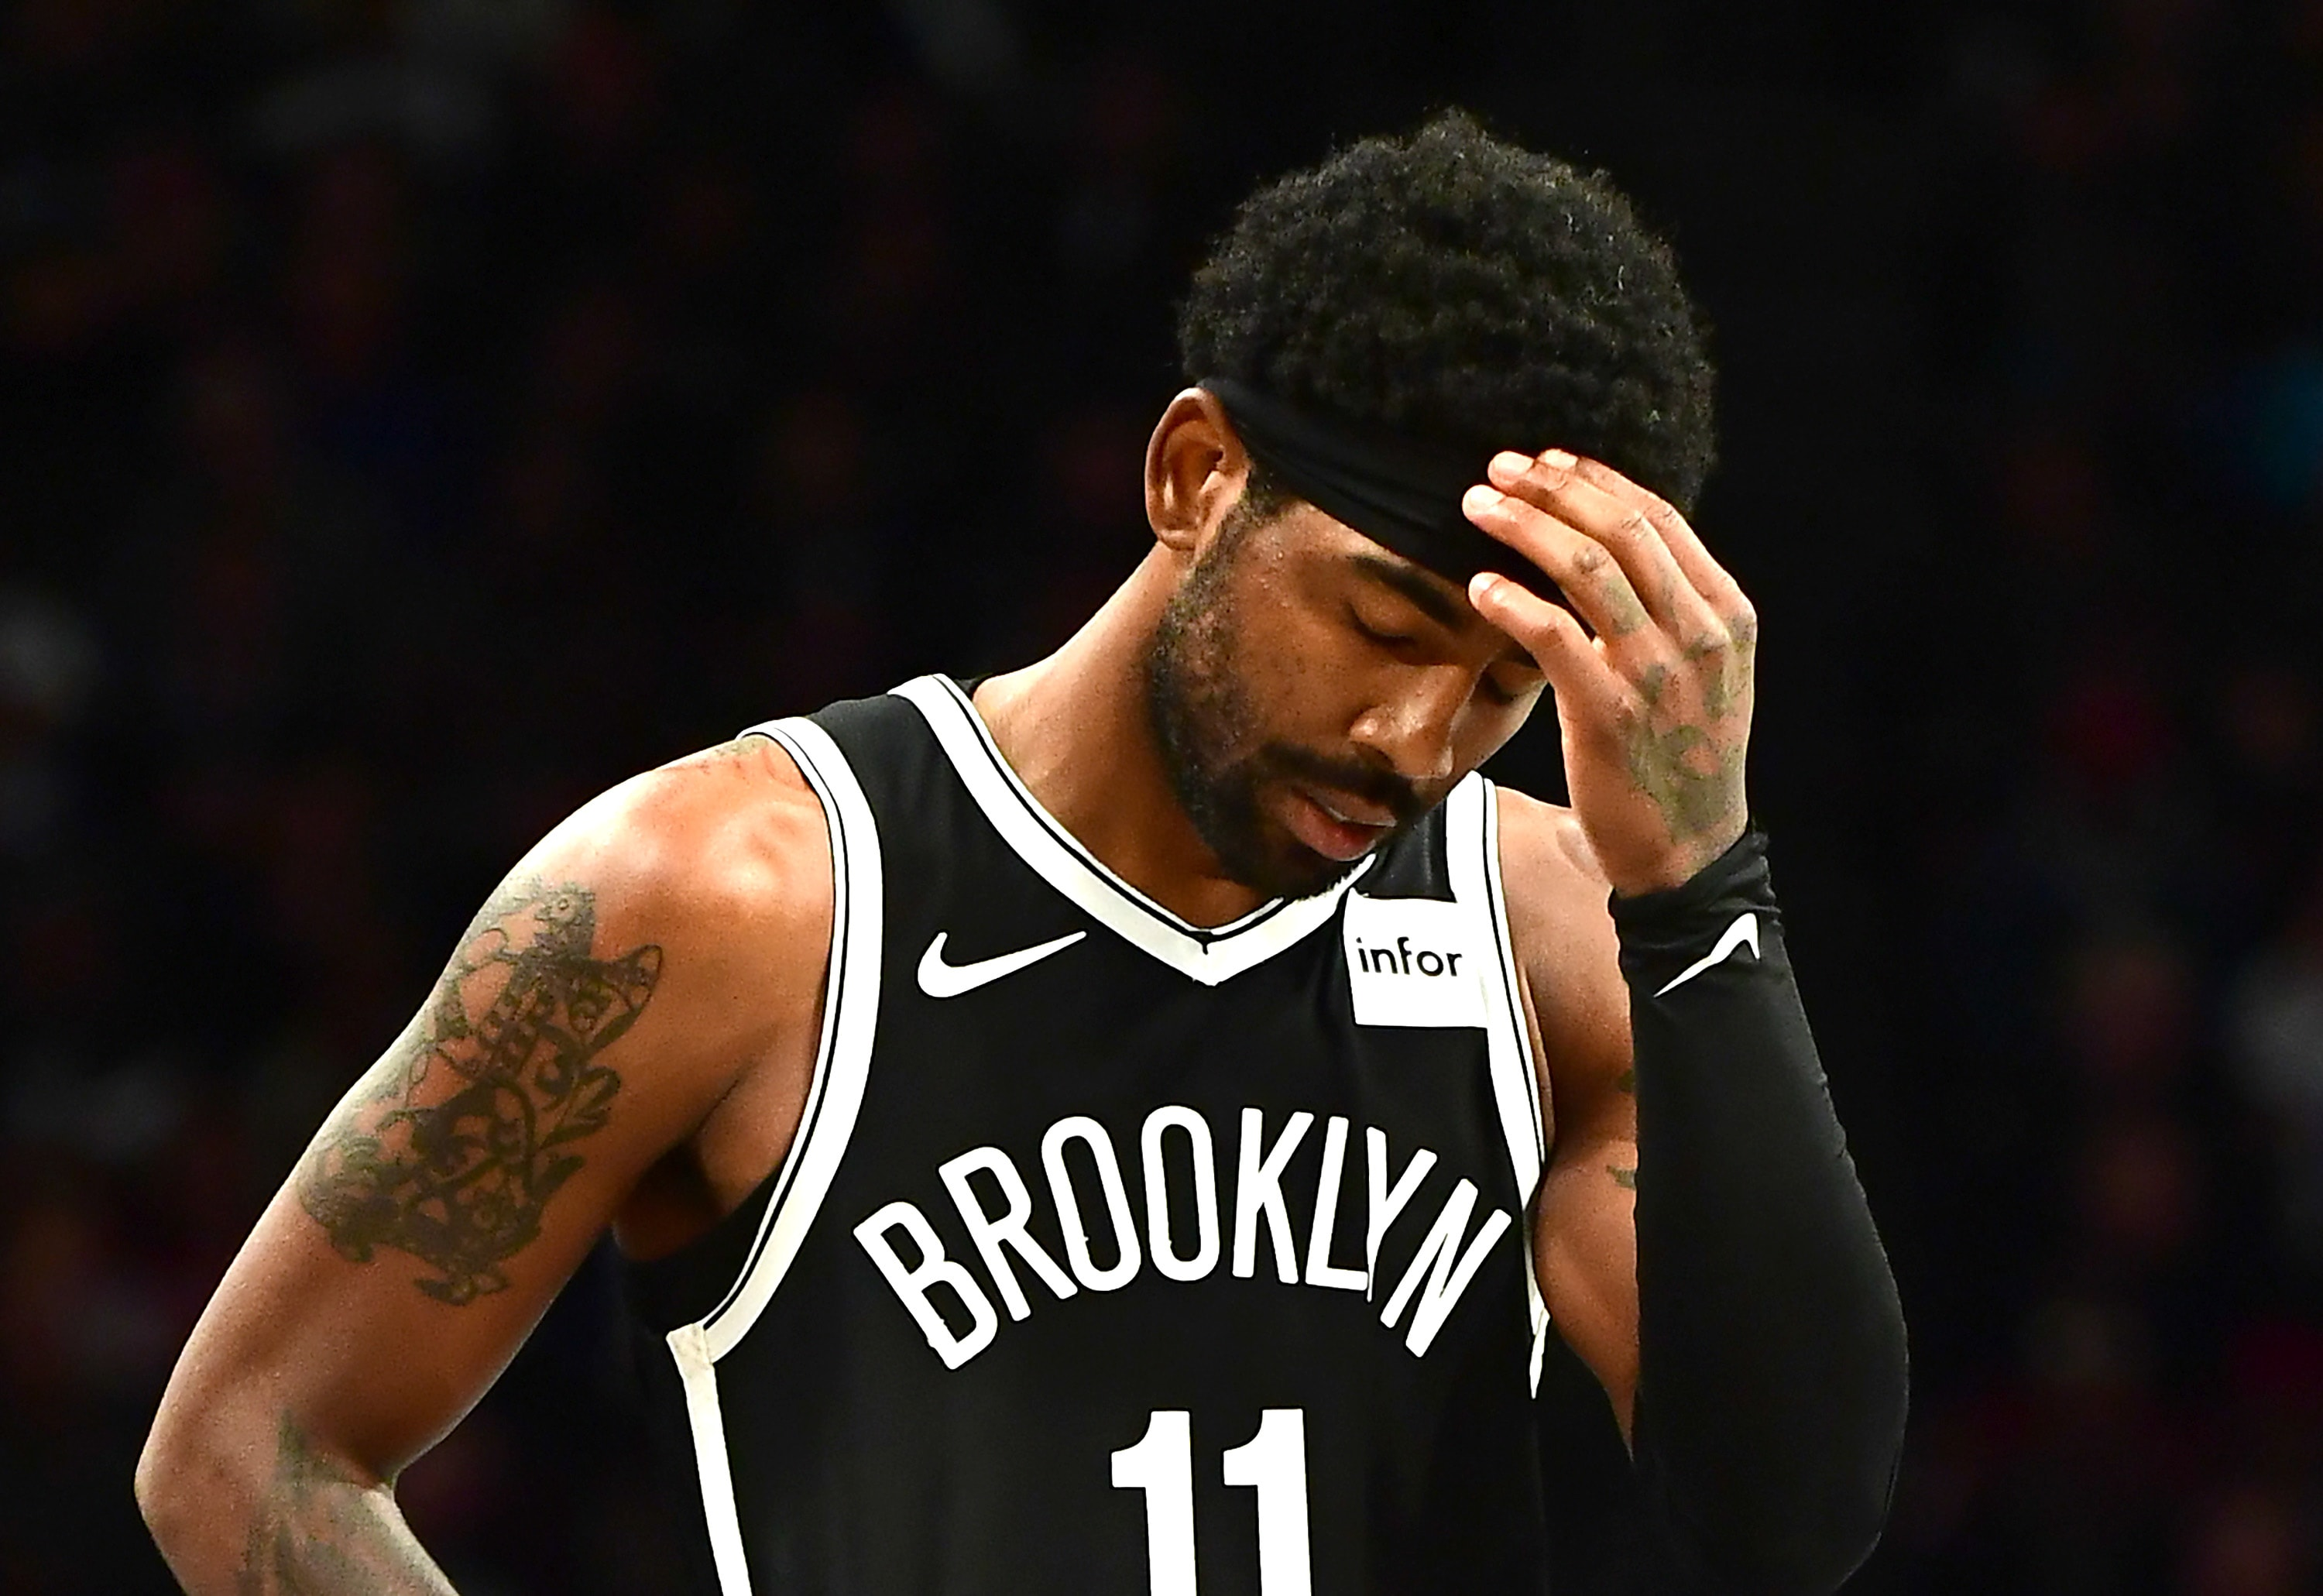 Kyrie Irving of the Brooklyn Nets reacts during the second half of their game against the Minnesota Timberwolves at Barclays Center on October 23, 2019 in the Brooklyn borough of New York City. (Photo by Emilee Chinn/Getty Images)